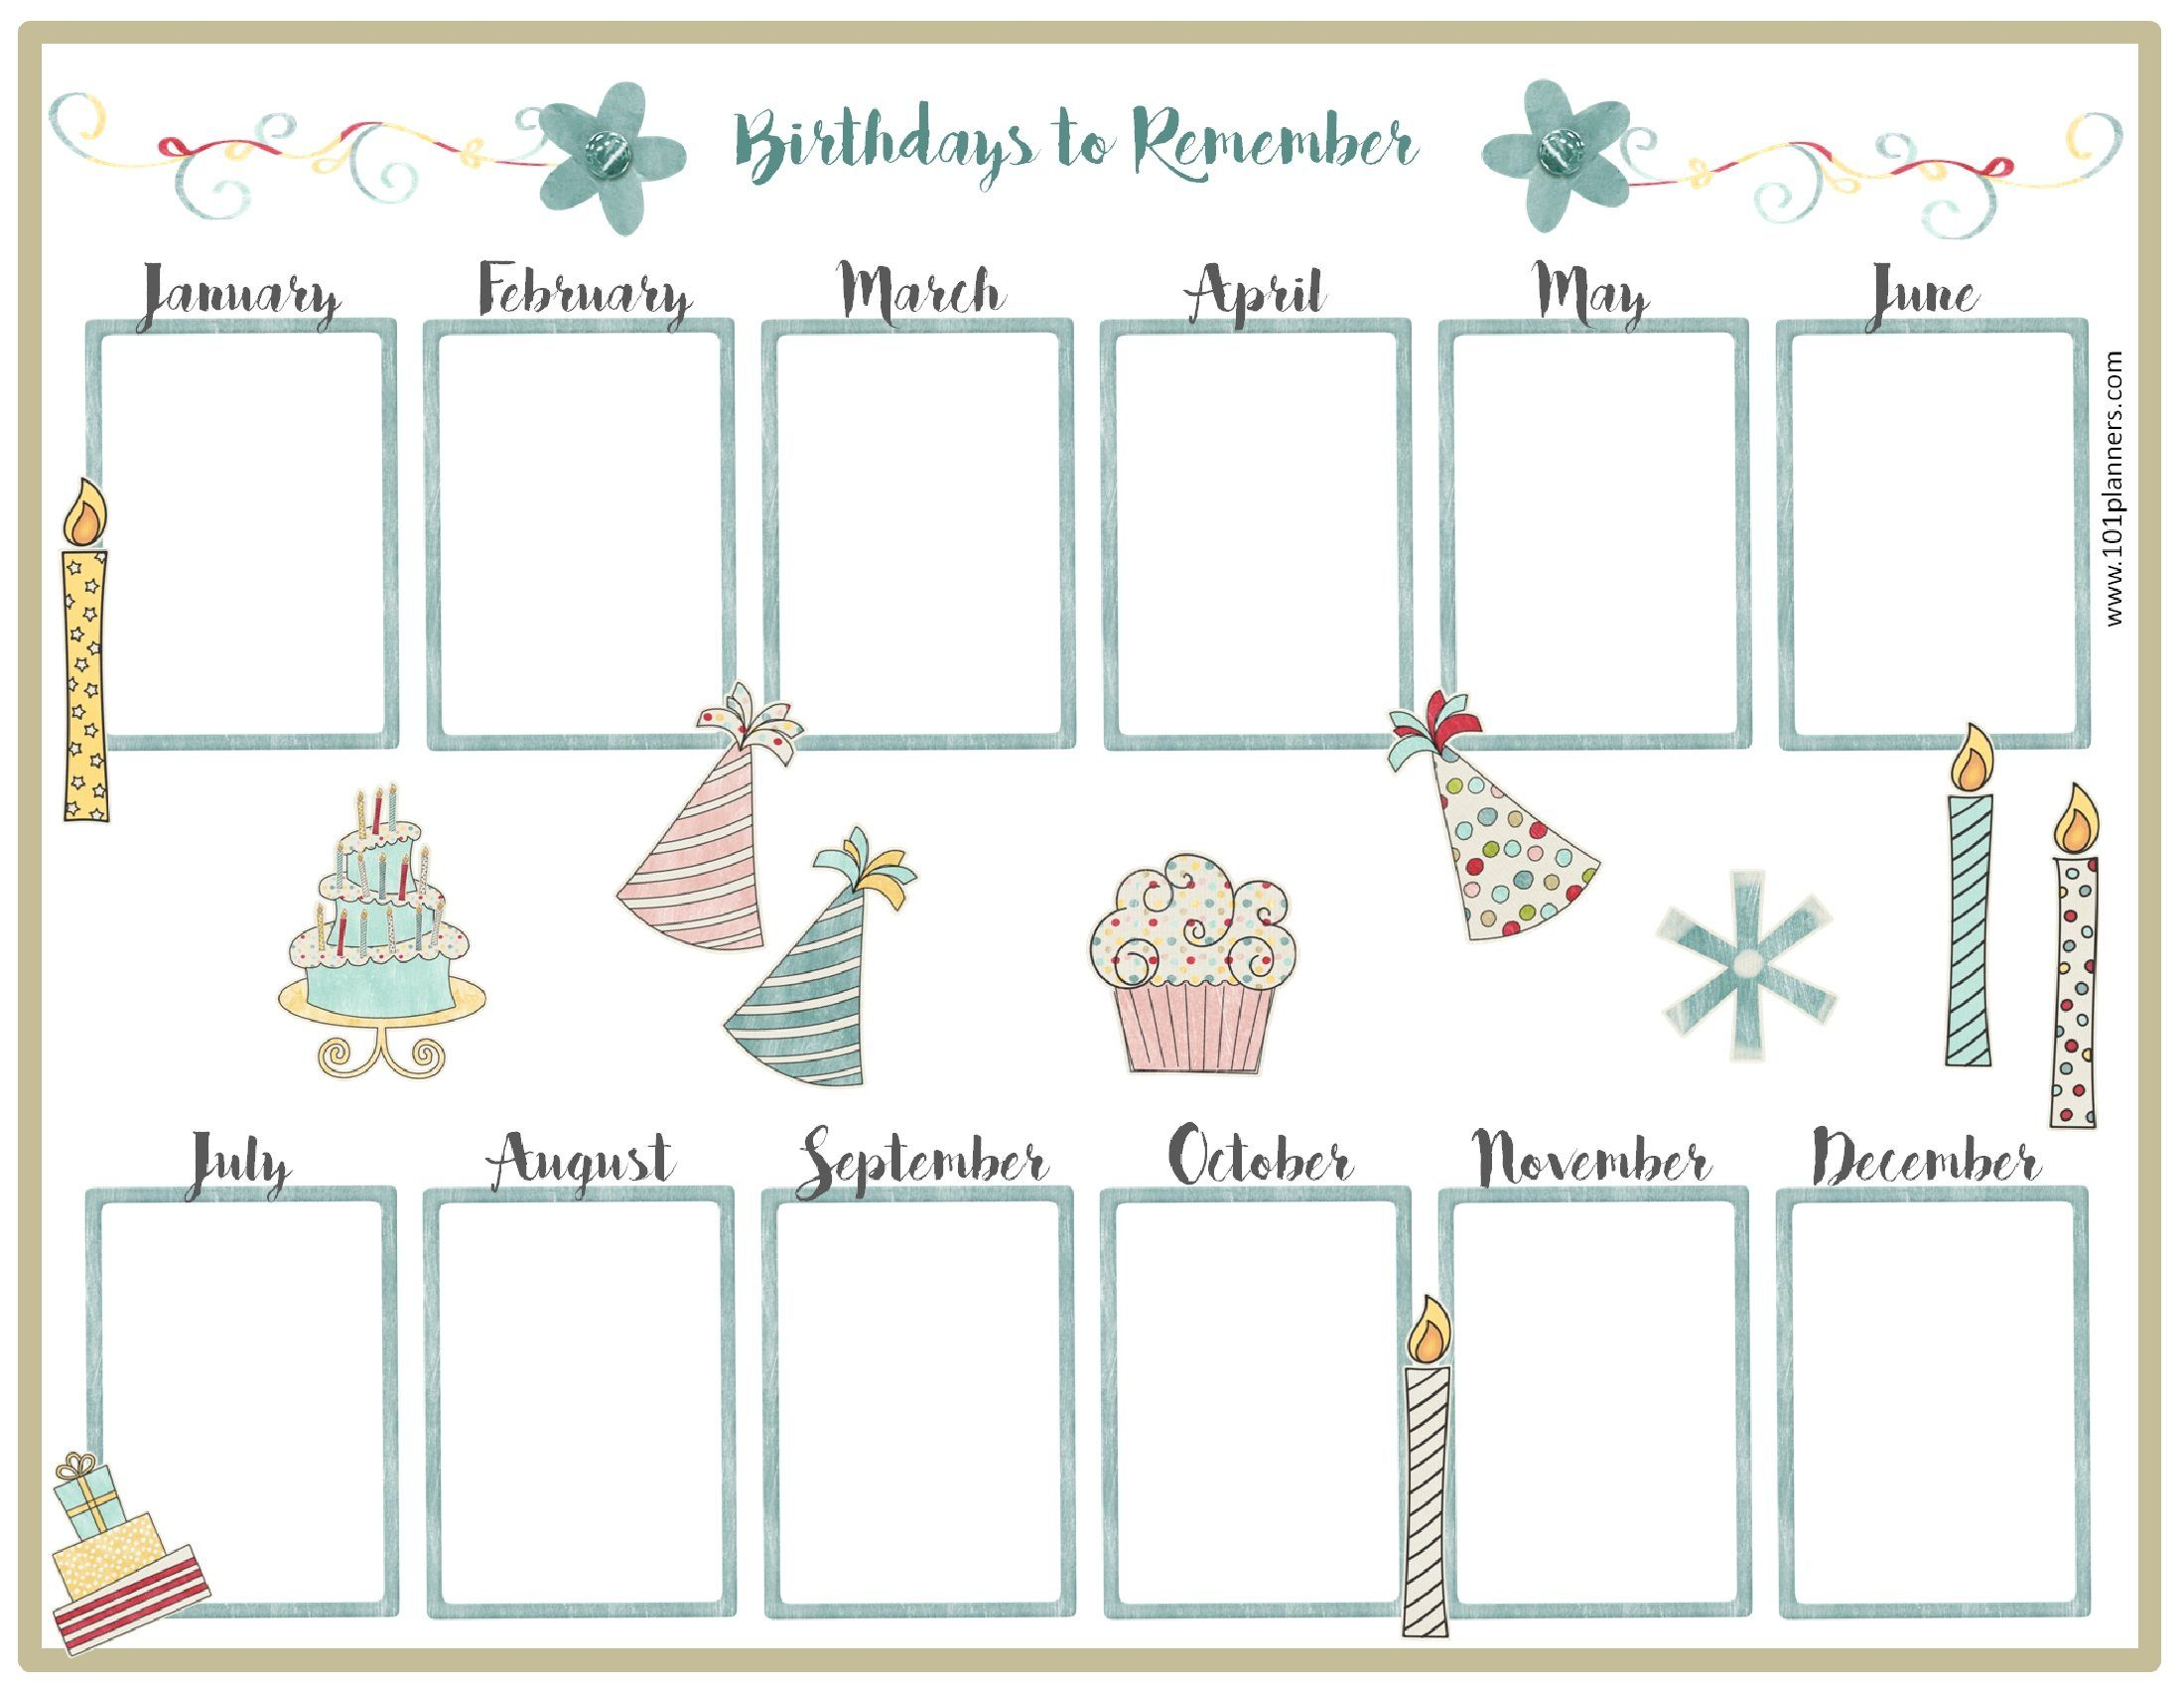 Birthday Calendar Template | Birthday Calender, Birthday with Blank Birthday Calendar Template